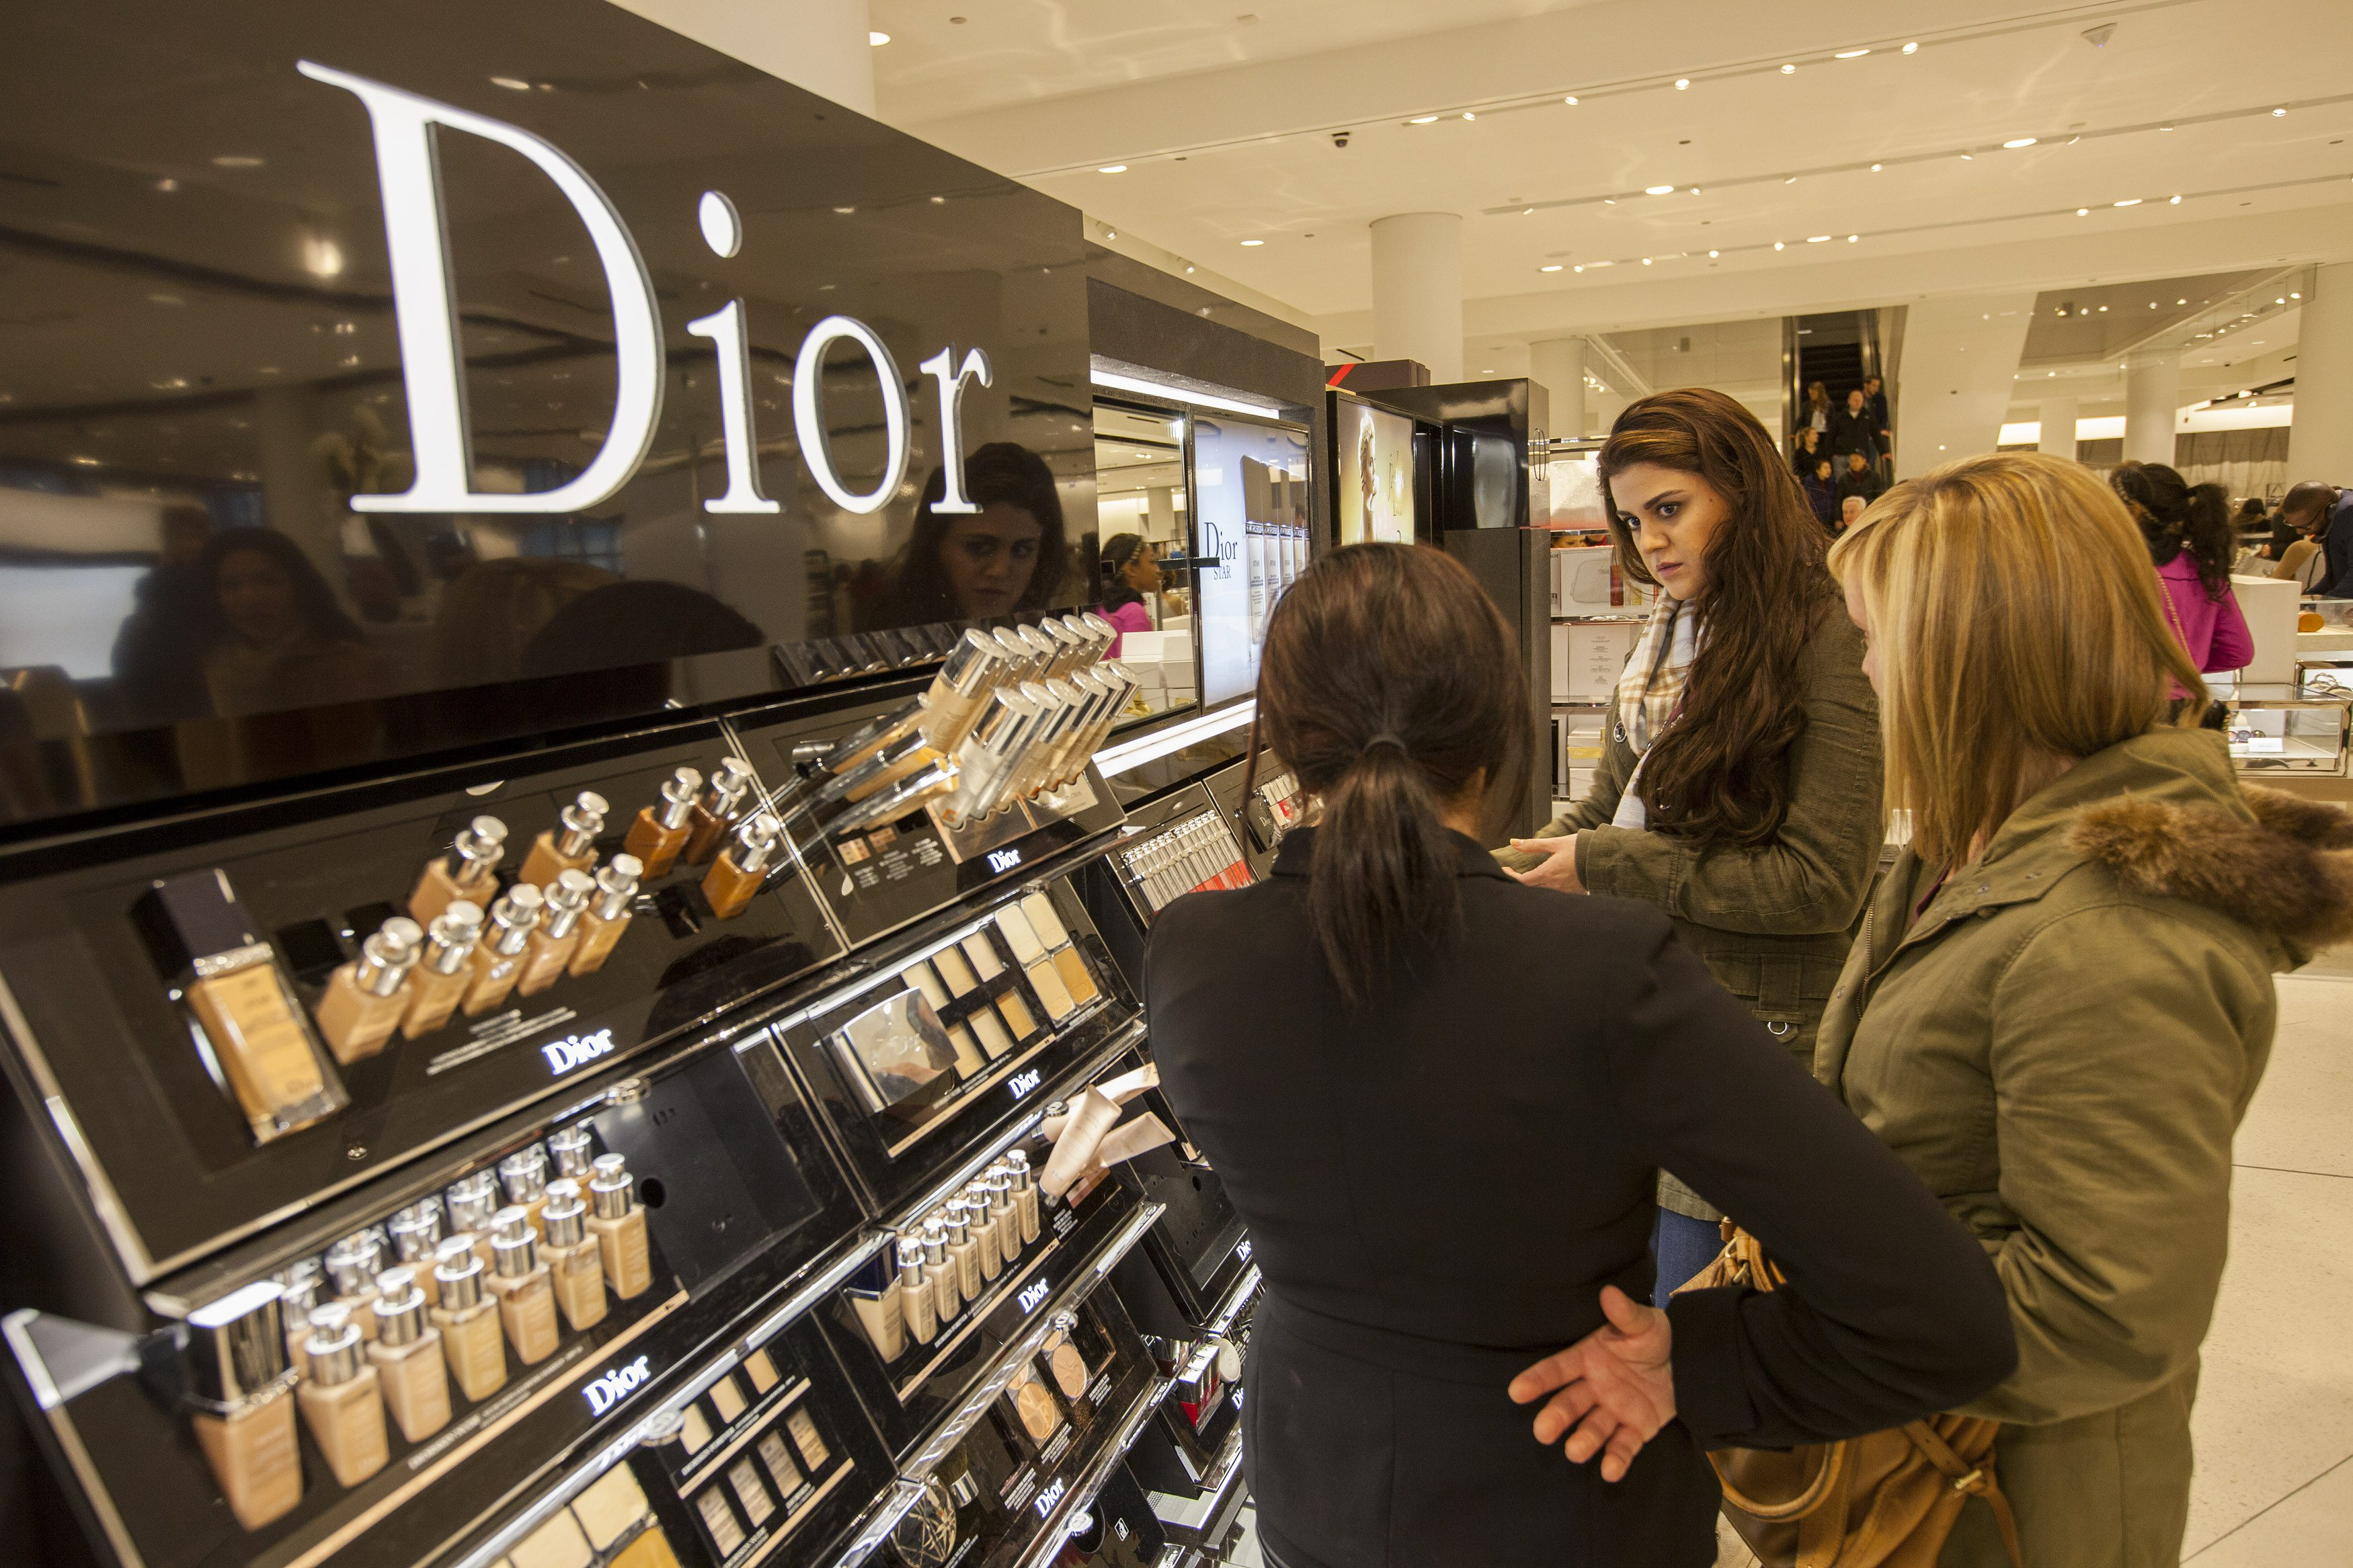 Shoppers at a Nordstrom Dior counter.